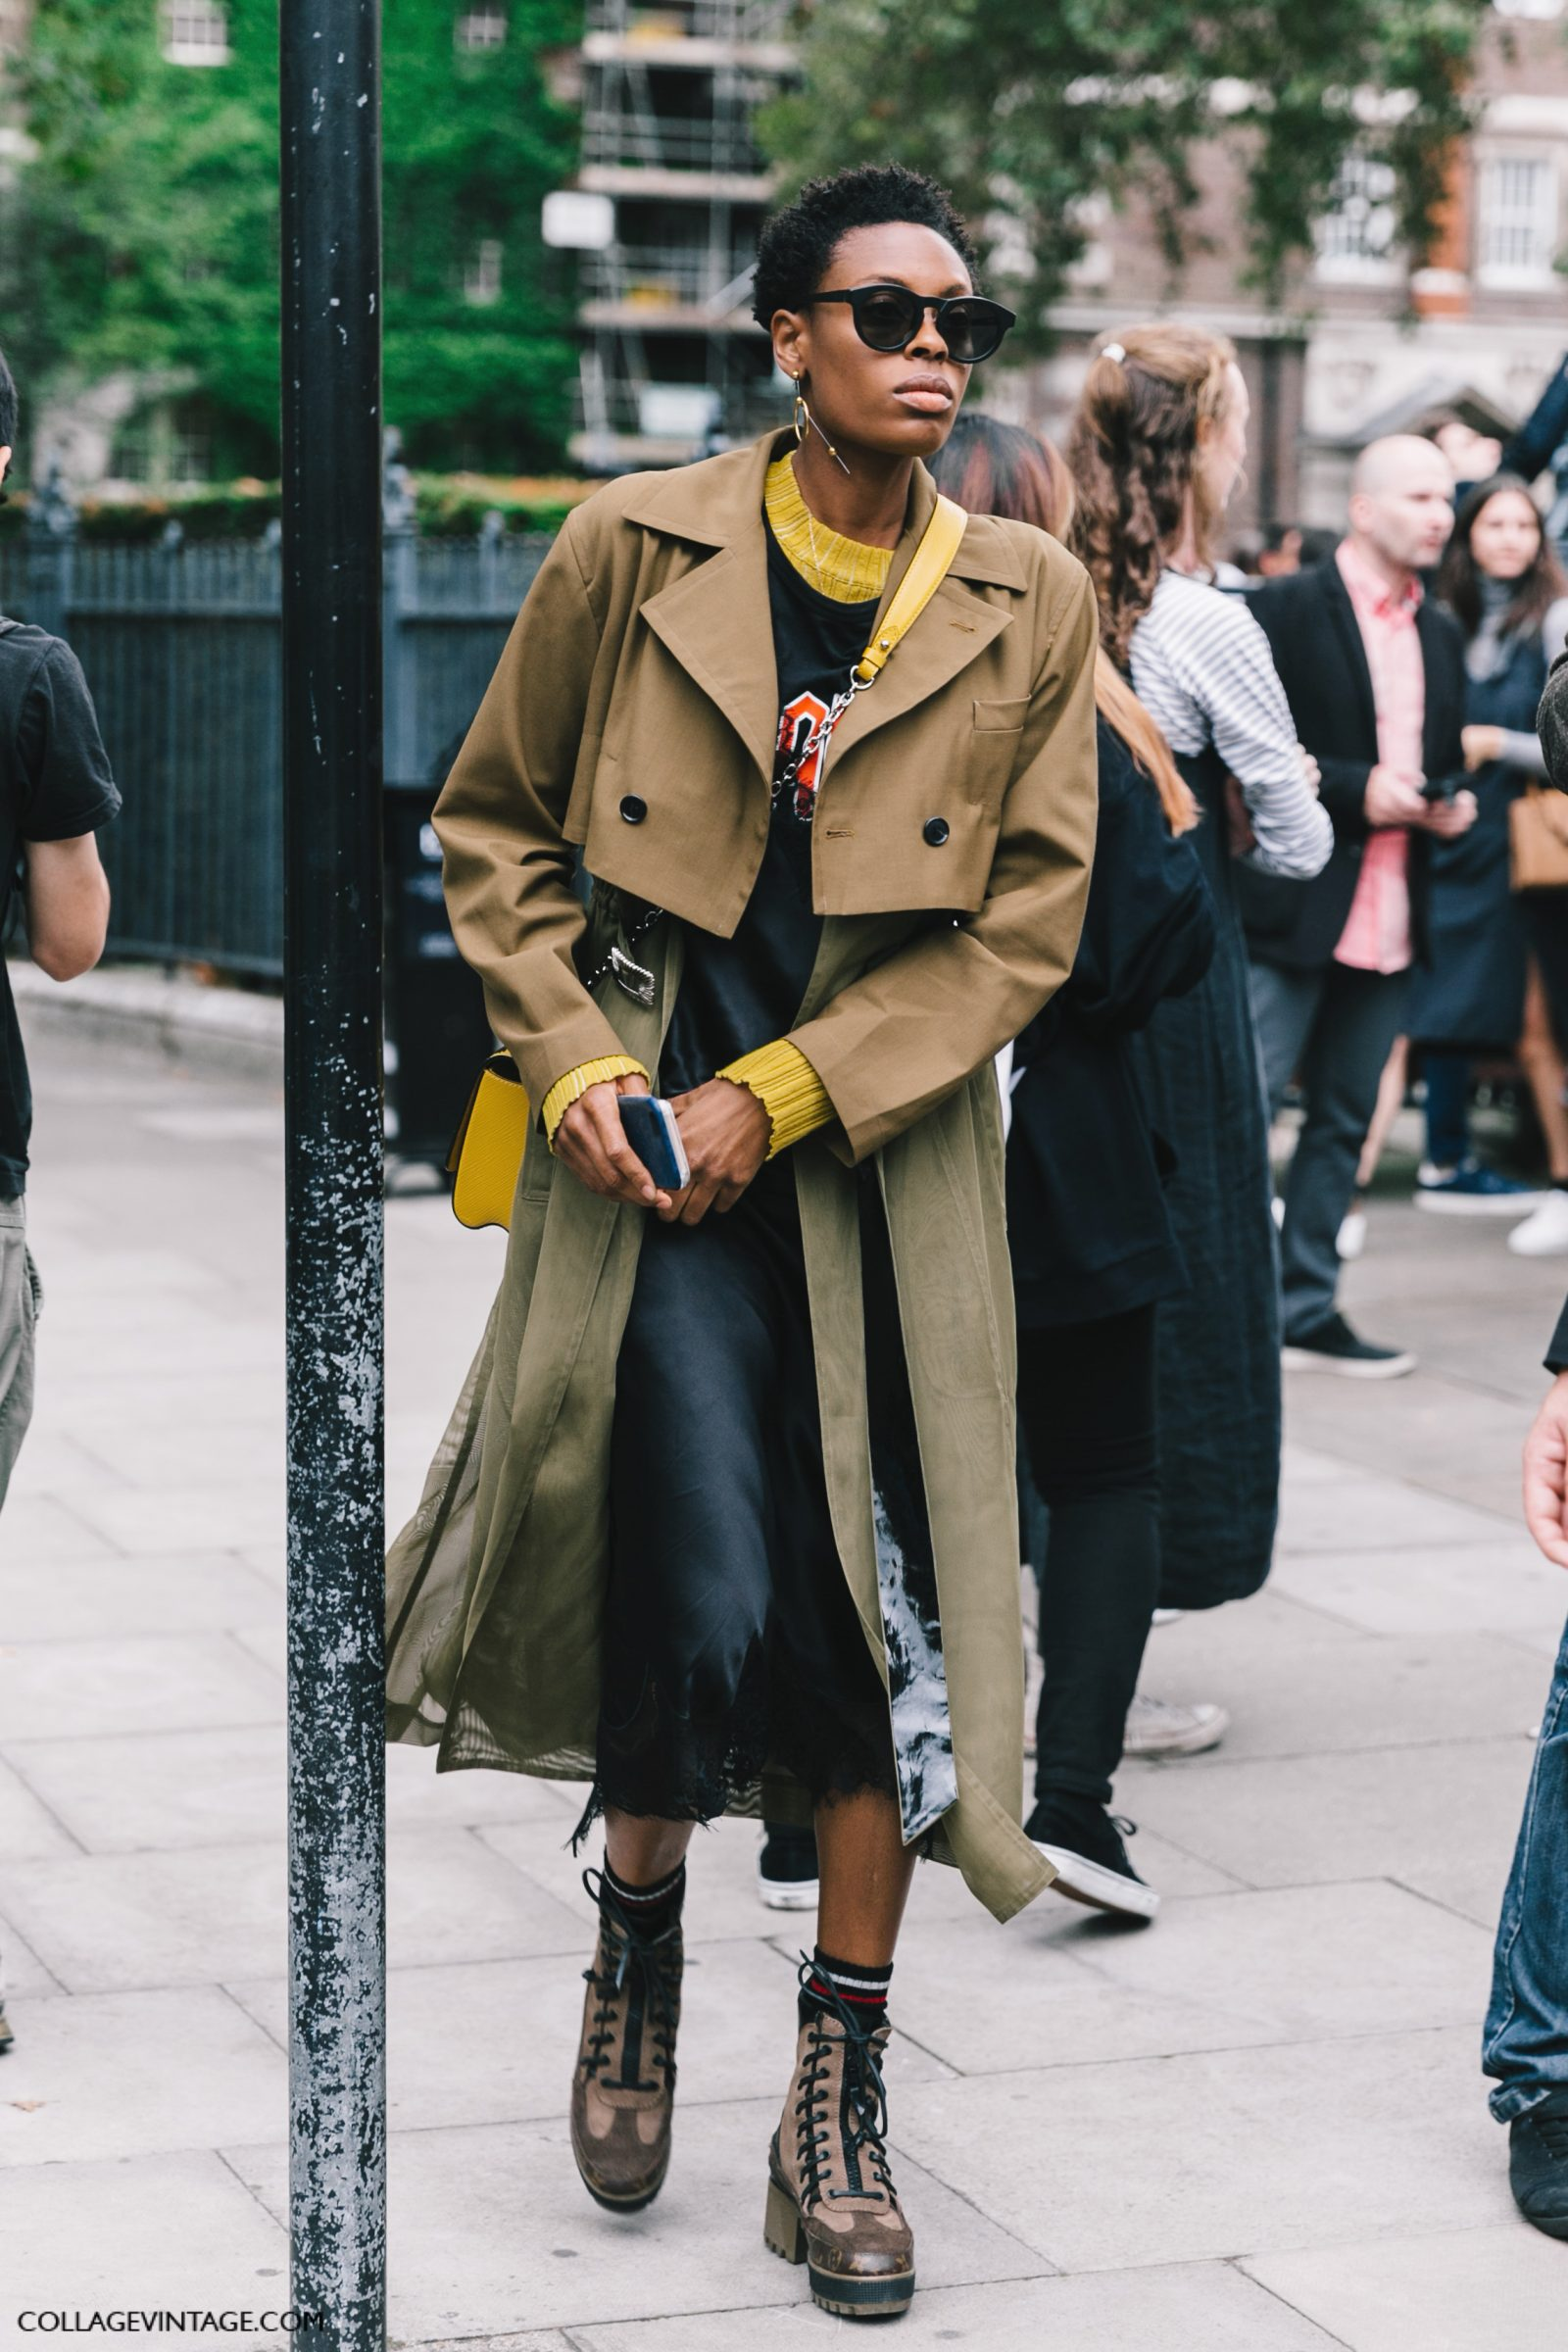 lfw-london_fashion_week_ss17-street_style-outfits-collage_vintage-vintage-roksanda-christopher_kane-joseph-126